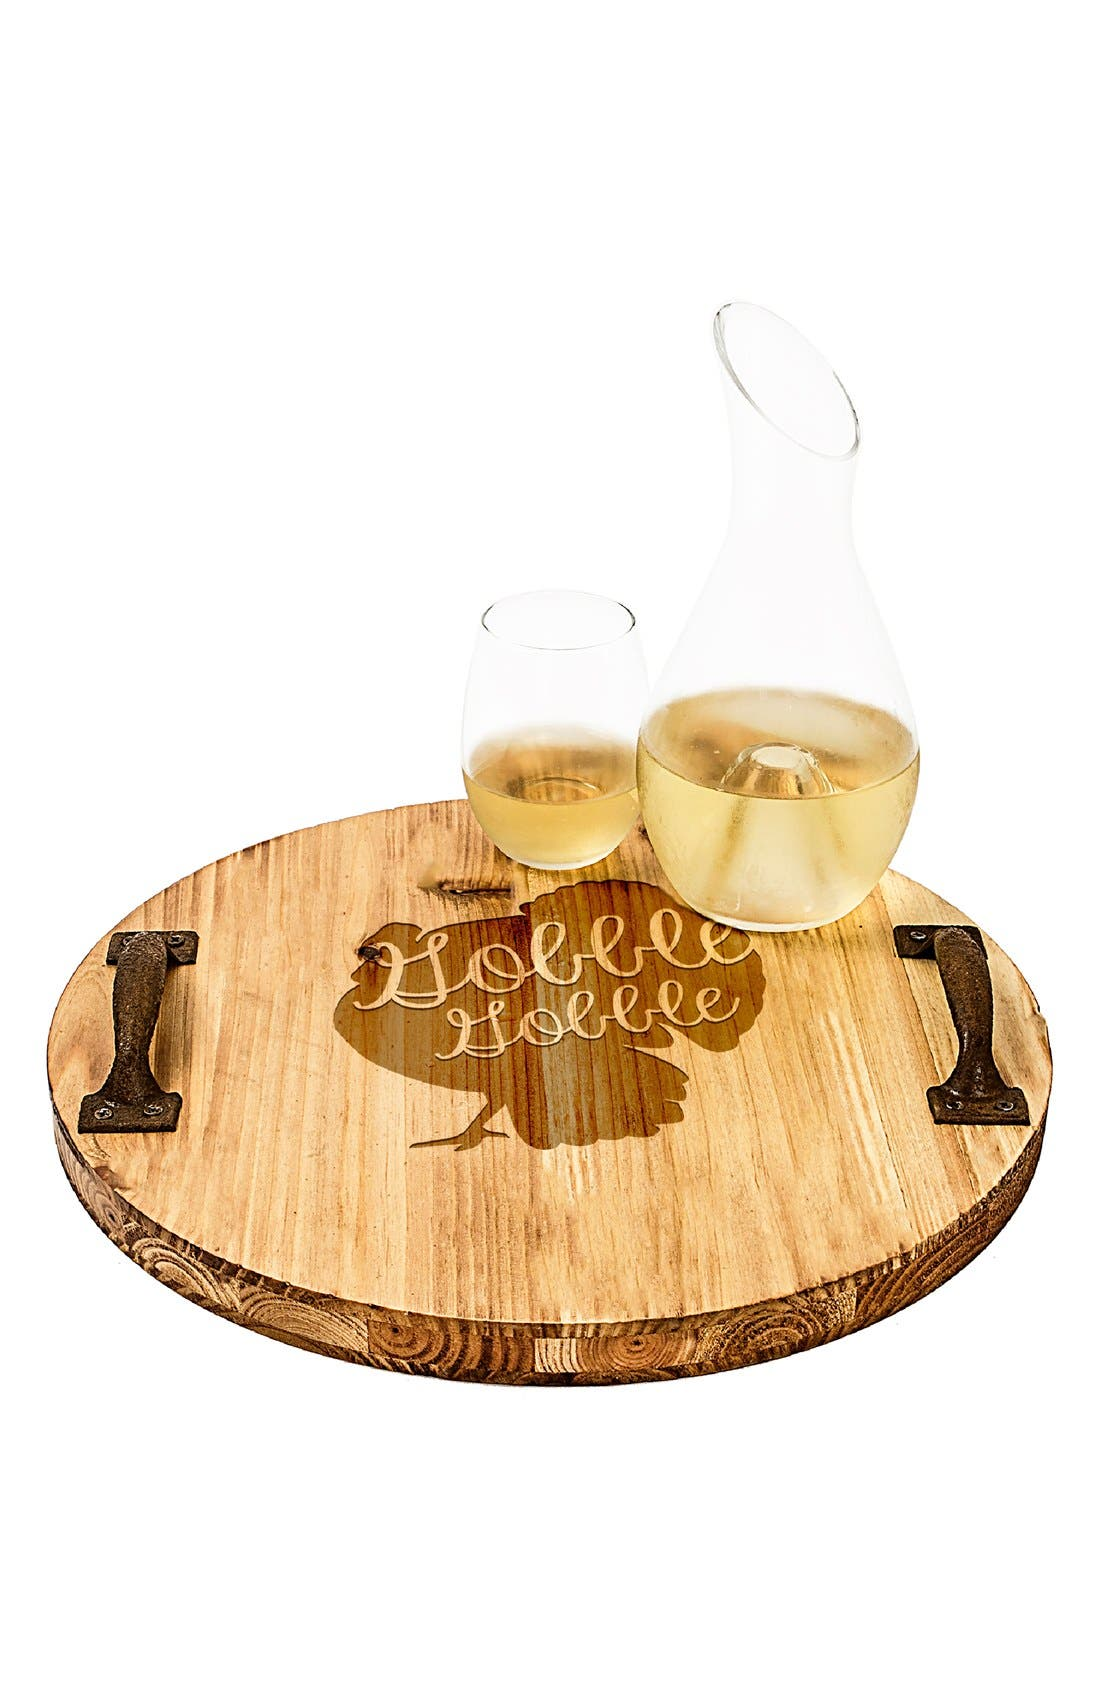 'Turkey' Rustic Wooden Tray,                             Main thumbnail 1, color,